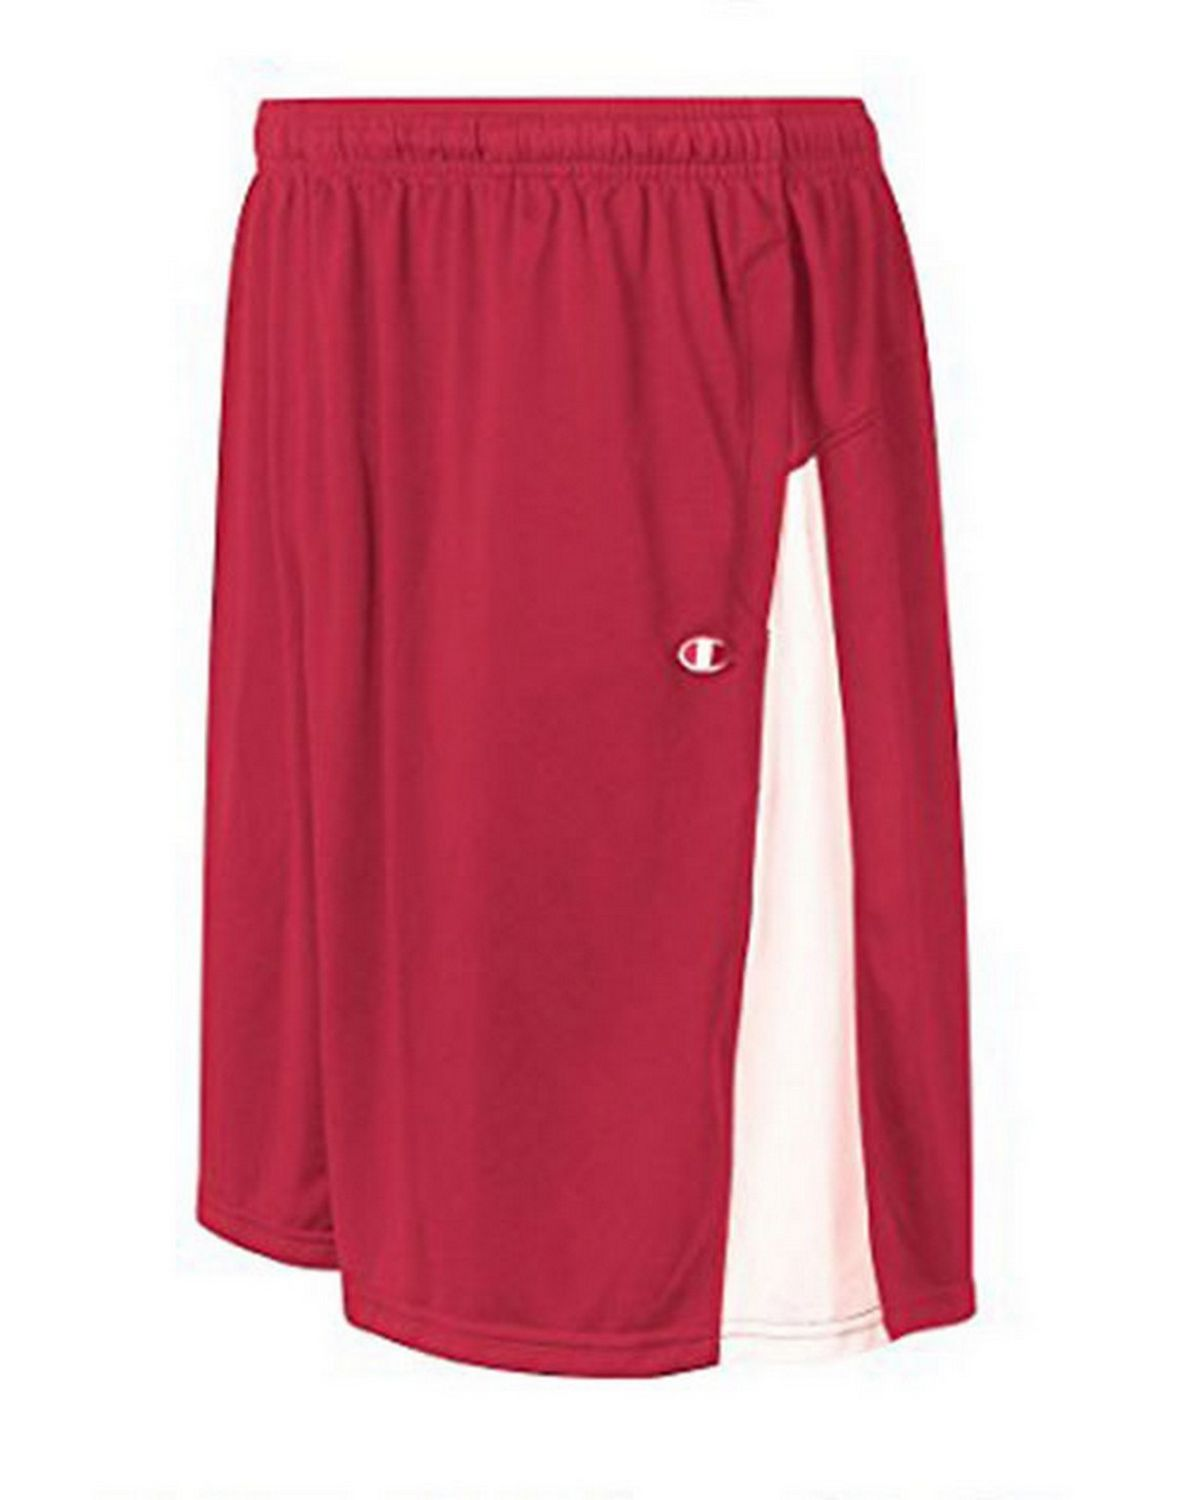 Champion 8508 Mens Double Dry Short - Scarlet/White - L 8508